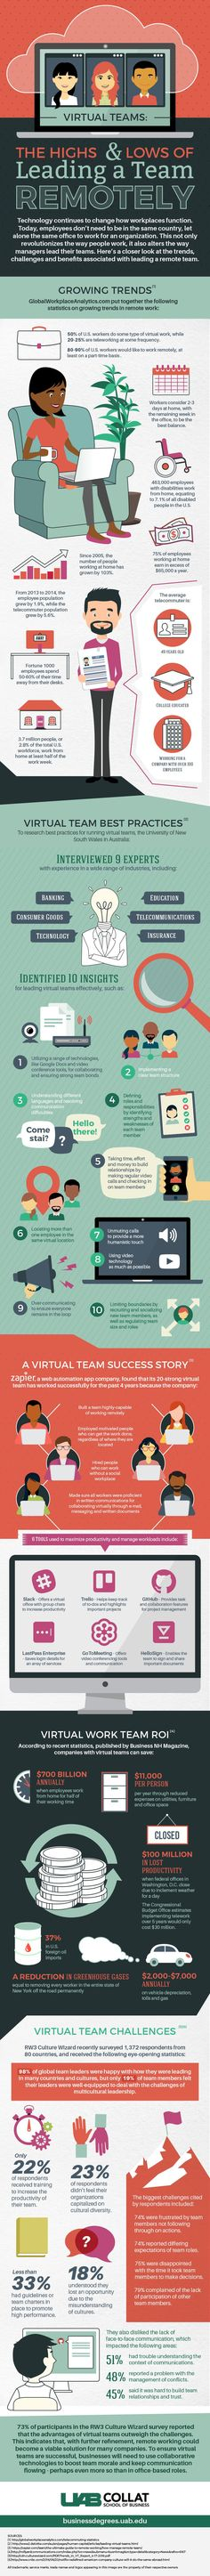 Virtual Team Leadership: The Highs & Lows of Leading a Team Remotely